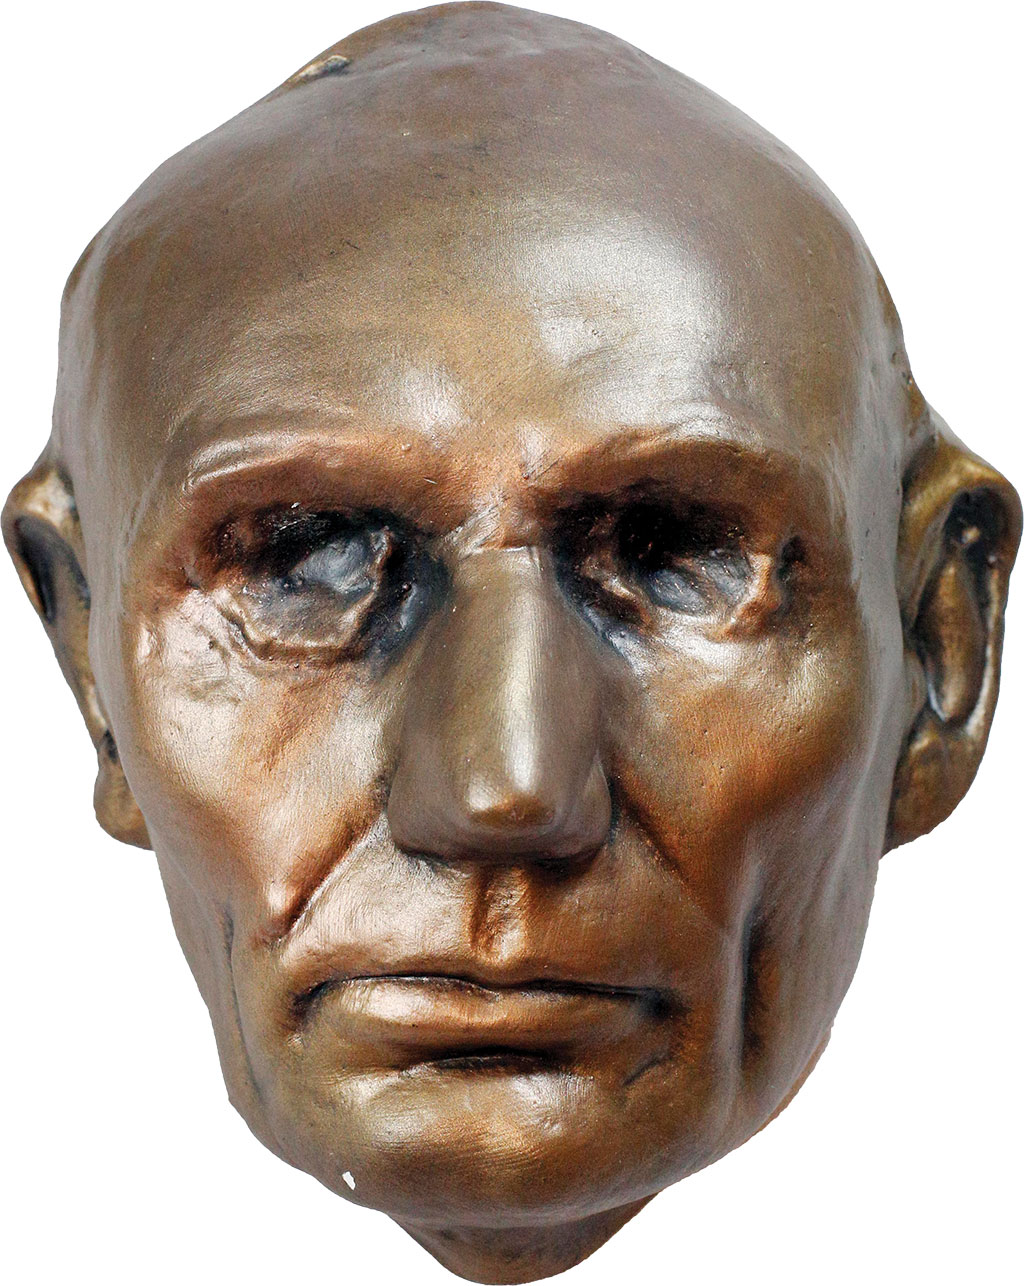 Abraham Lincoln life mask from the Lincoln family collection